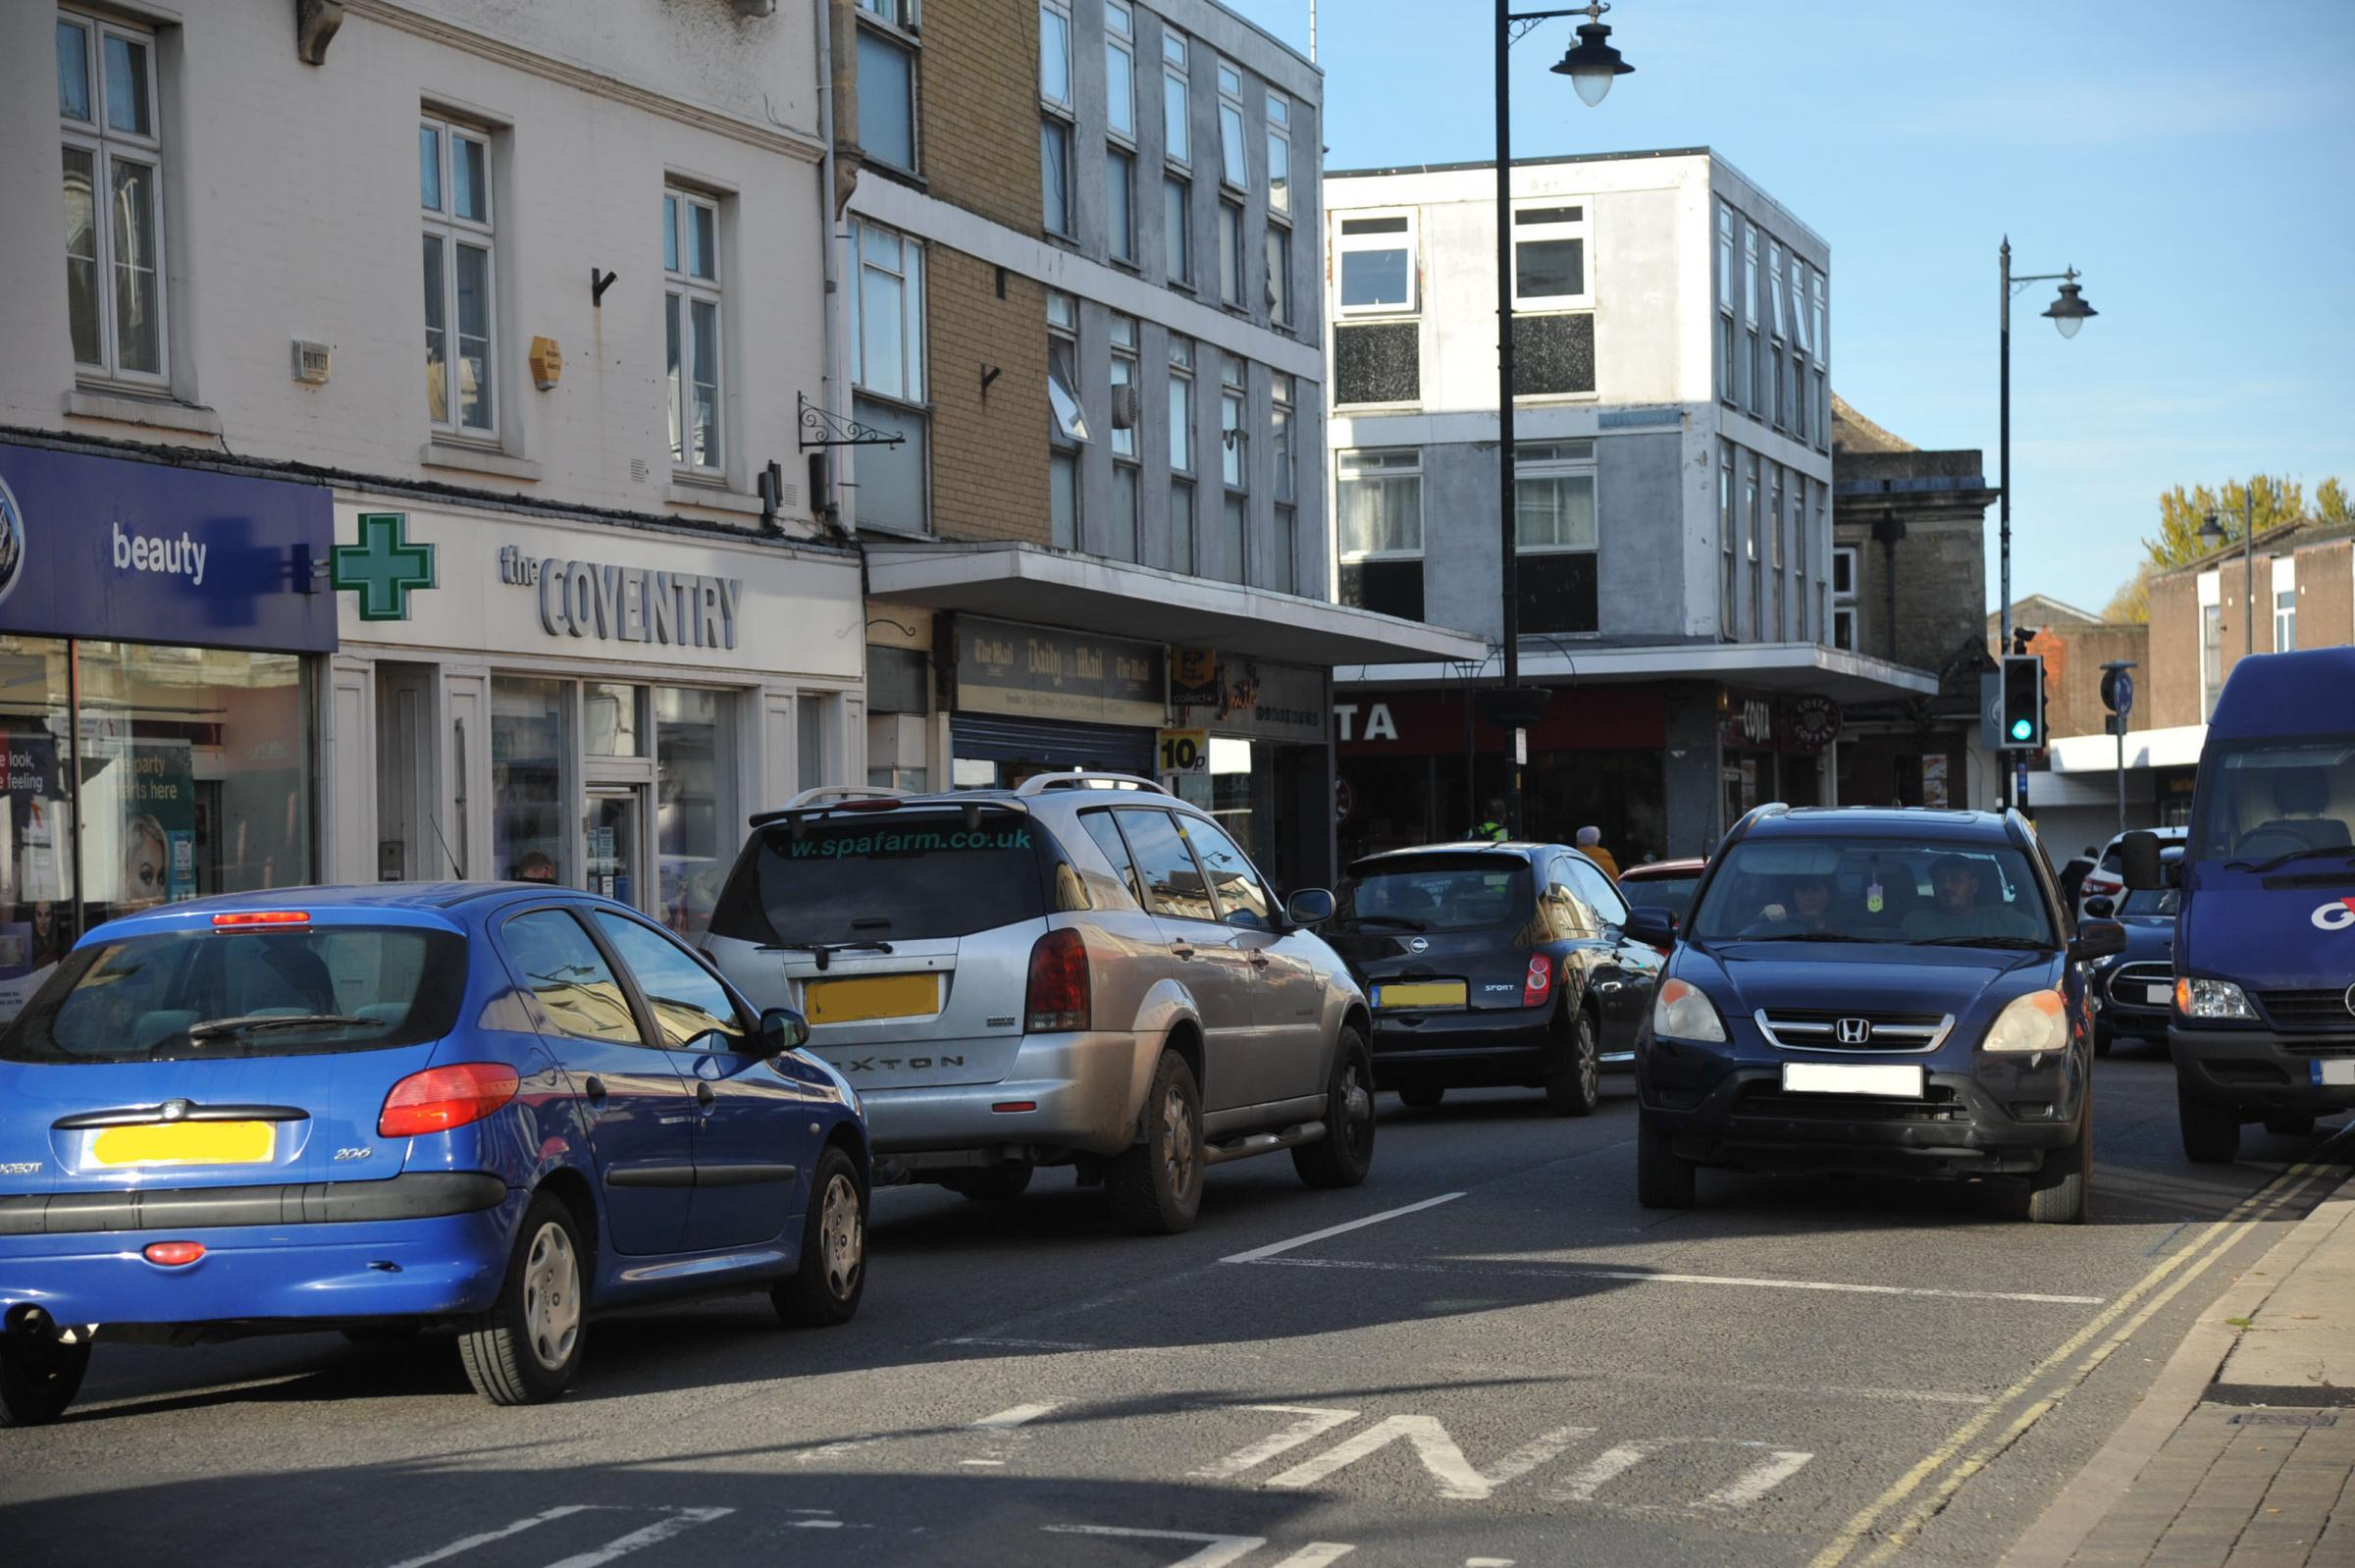 Councillor proposes to temporarily close Melksham High Street between Lowbourne and Church Street to reduce traffic pollution Photo: Trevor Porter 59980